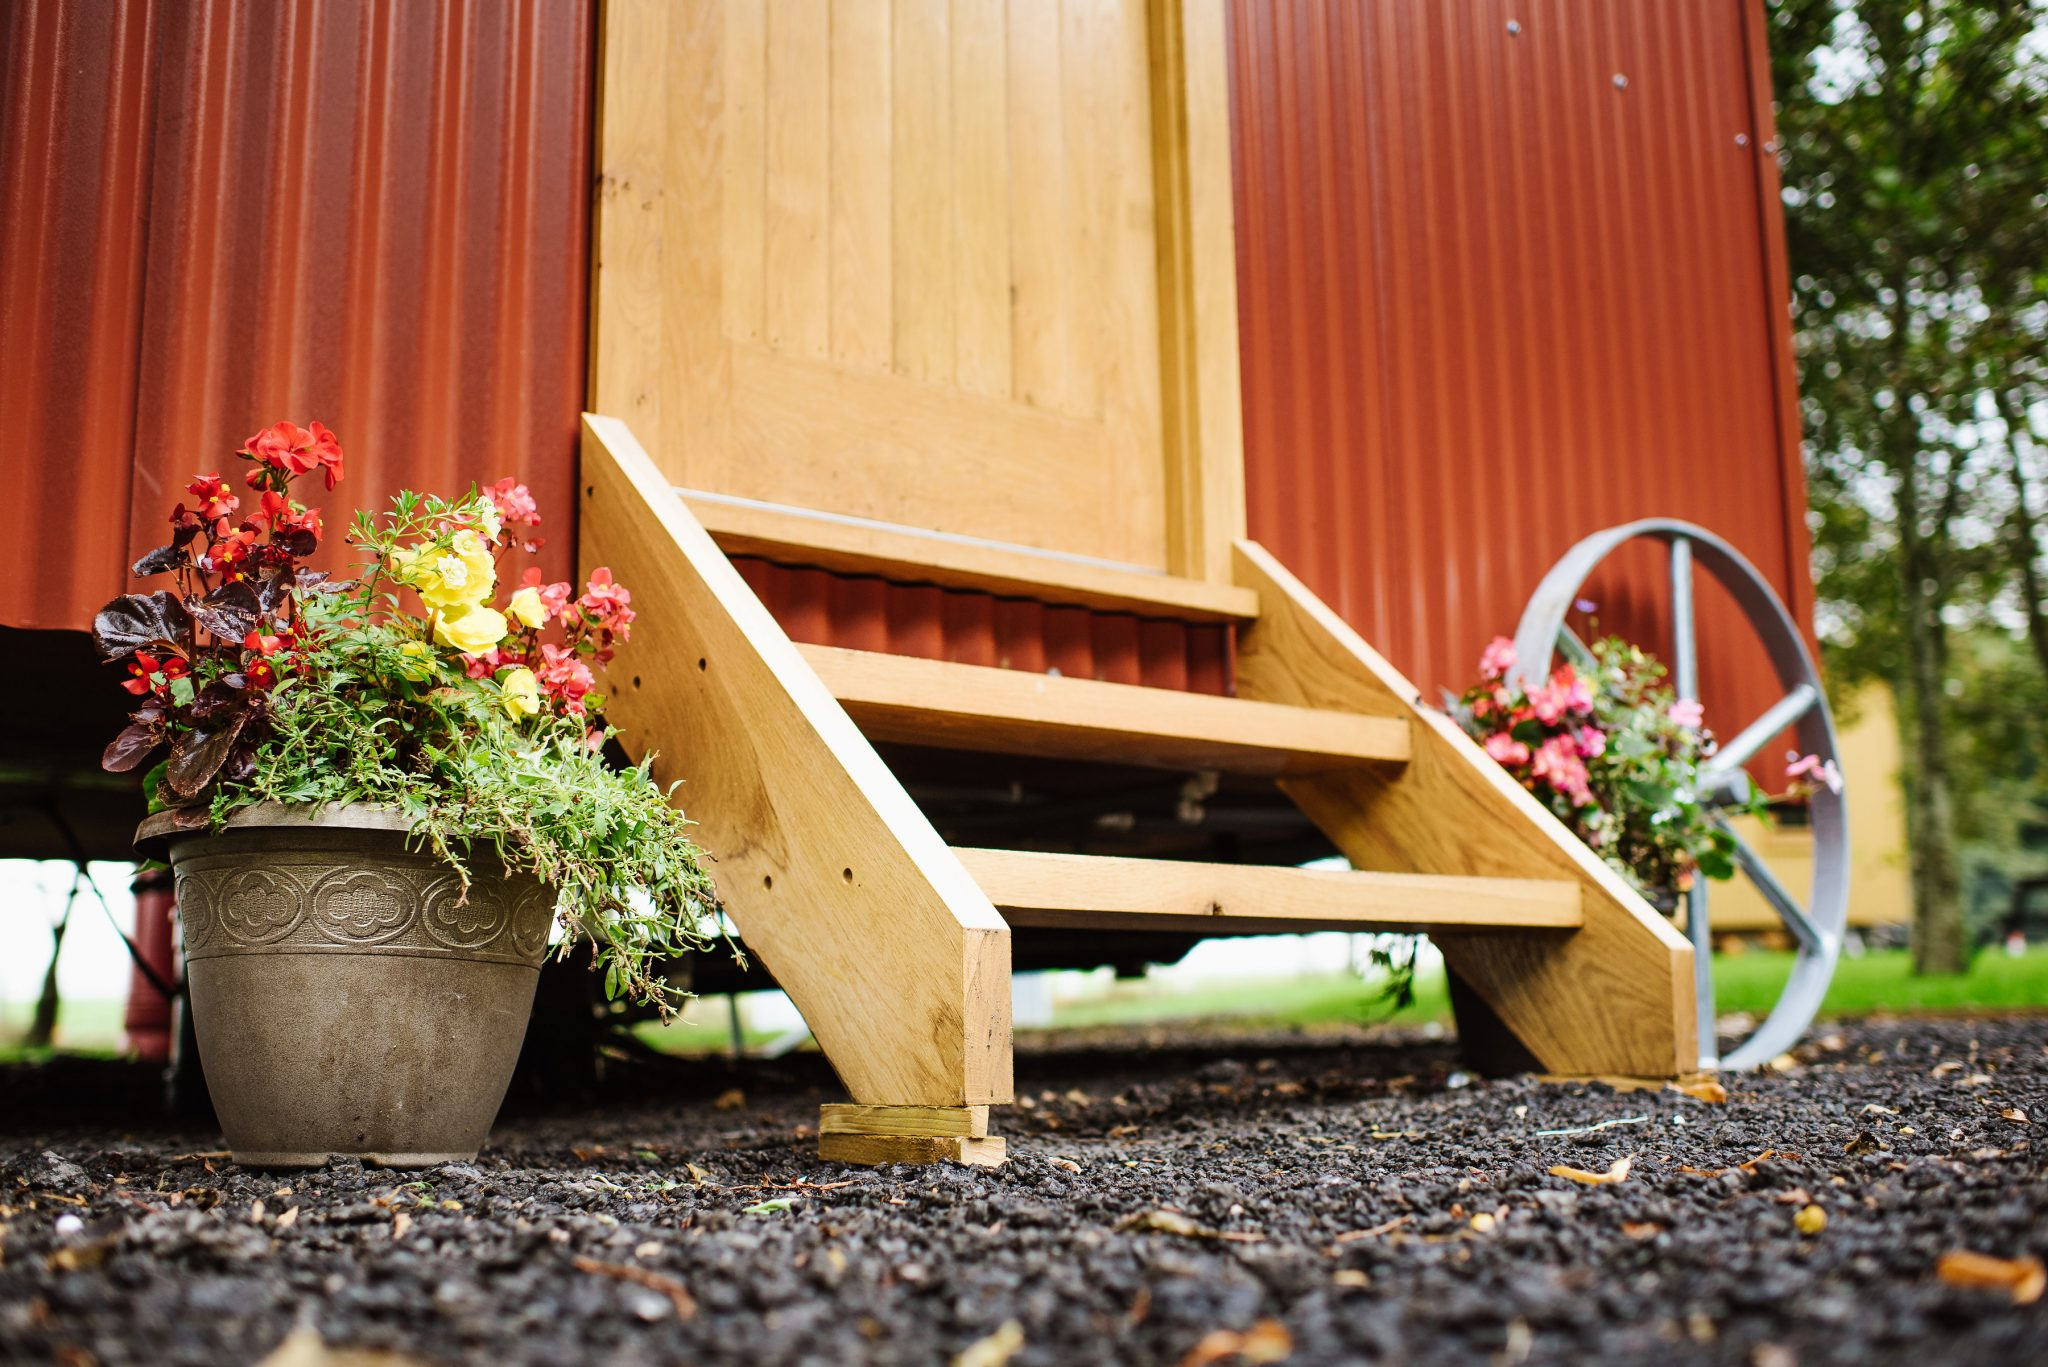 Shepherds Huts handcrafted windows doors and entrance steps